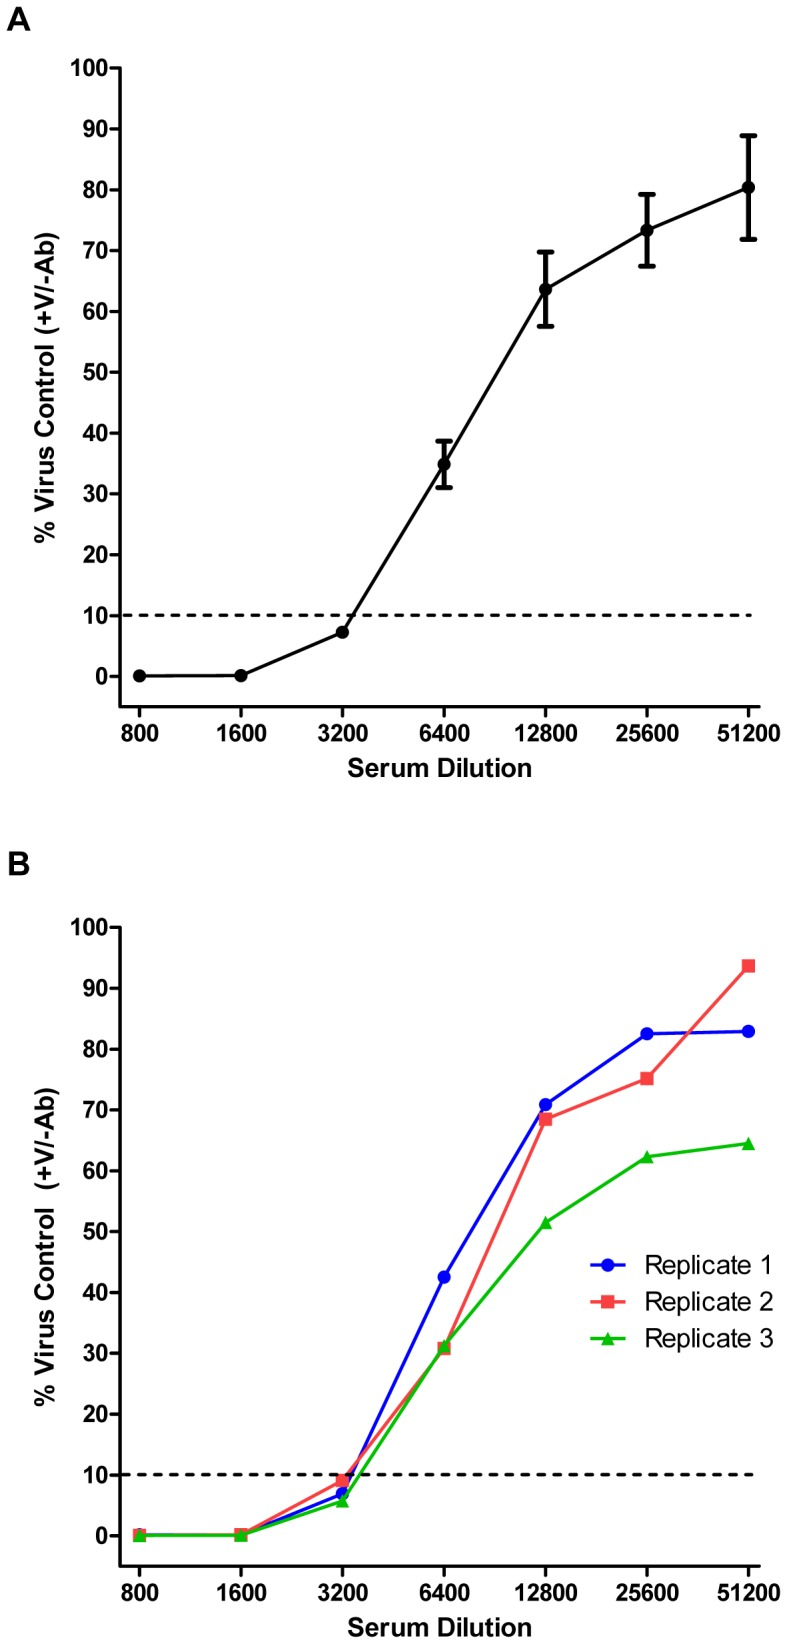 Influenza virus microneutralization assessed by qRT-PCR (qPCR-MN). ( A ) An inoculum containing 1000 TCID 50 of virus (Bris/07) was mixed with a dilution from a 2-fold dilution series of ferret antiserum in a well of a 96-well plate. After allowing the neutralization reaction to proceed for 1 hour at 37°C, trypsinized MDCK-London cells (30,000 per well) were added. TPCK-trypsin was present at 1 µg/mL. After 6 hours, experimental samples were prepared using SPR and subjected to qRT-PCR. The RNA copy numbers were normalized to the mean value obtained from infected wells in the absence of neutralizing serum (virus control wells). Each point represents the mean ± SEM (n = 3). The neutralization titer was defined as the reciprocal of the highest dilution factor of serum necessary to inhibit the PCR signal by 90%. ( B ) Same data as in (A); however, each experimental replicate was assessed independently. The mean of these curves would result in the curve depicted in (A).